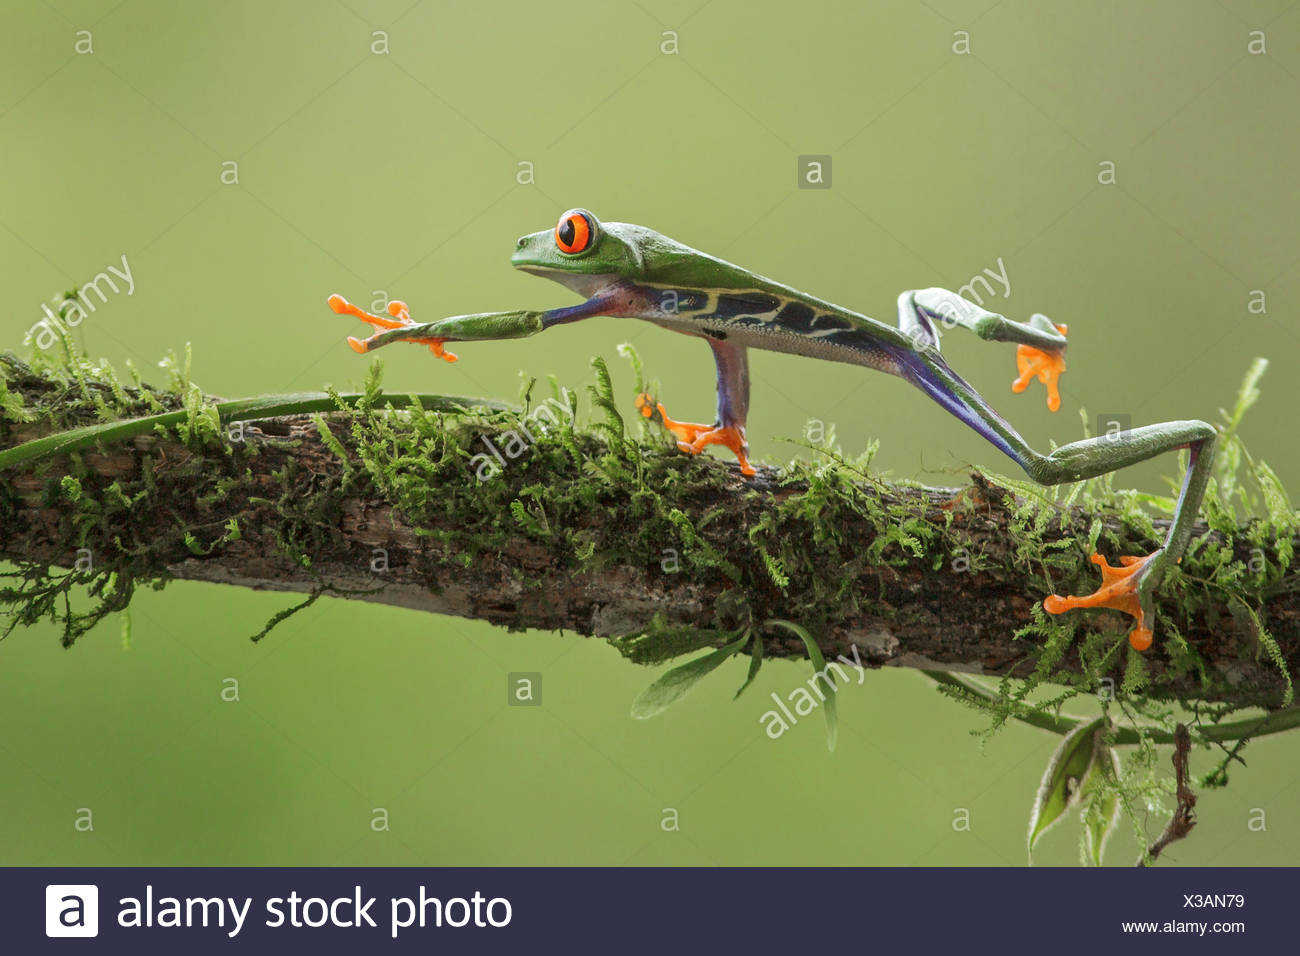 Macro Redeyed Tree Frog perched on a branch in Costa Rica - Stock Image